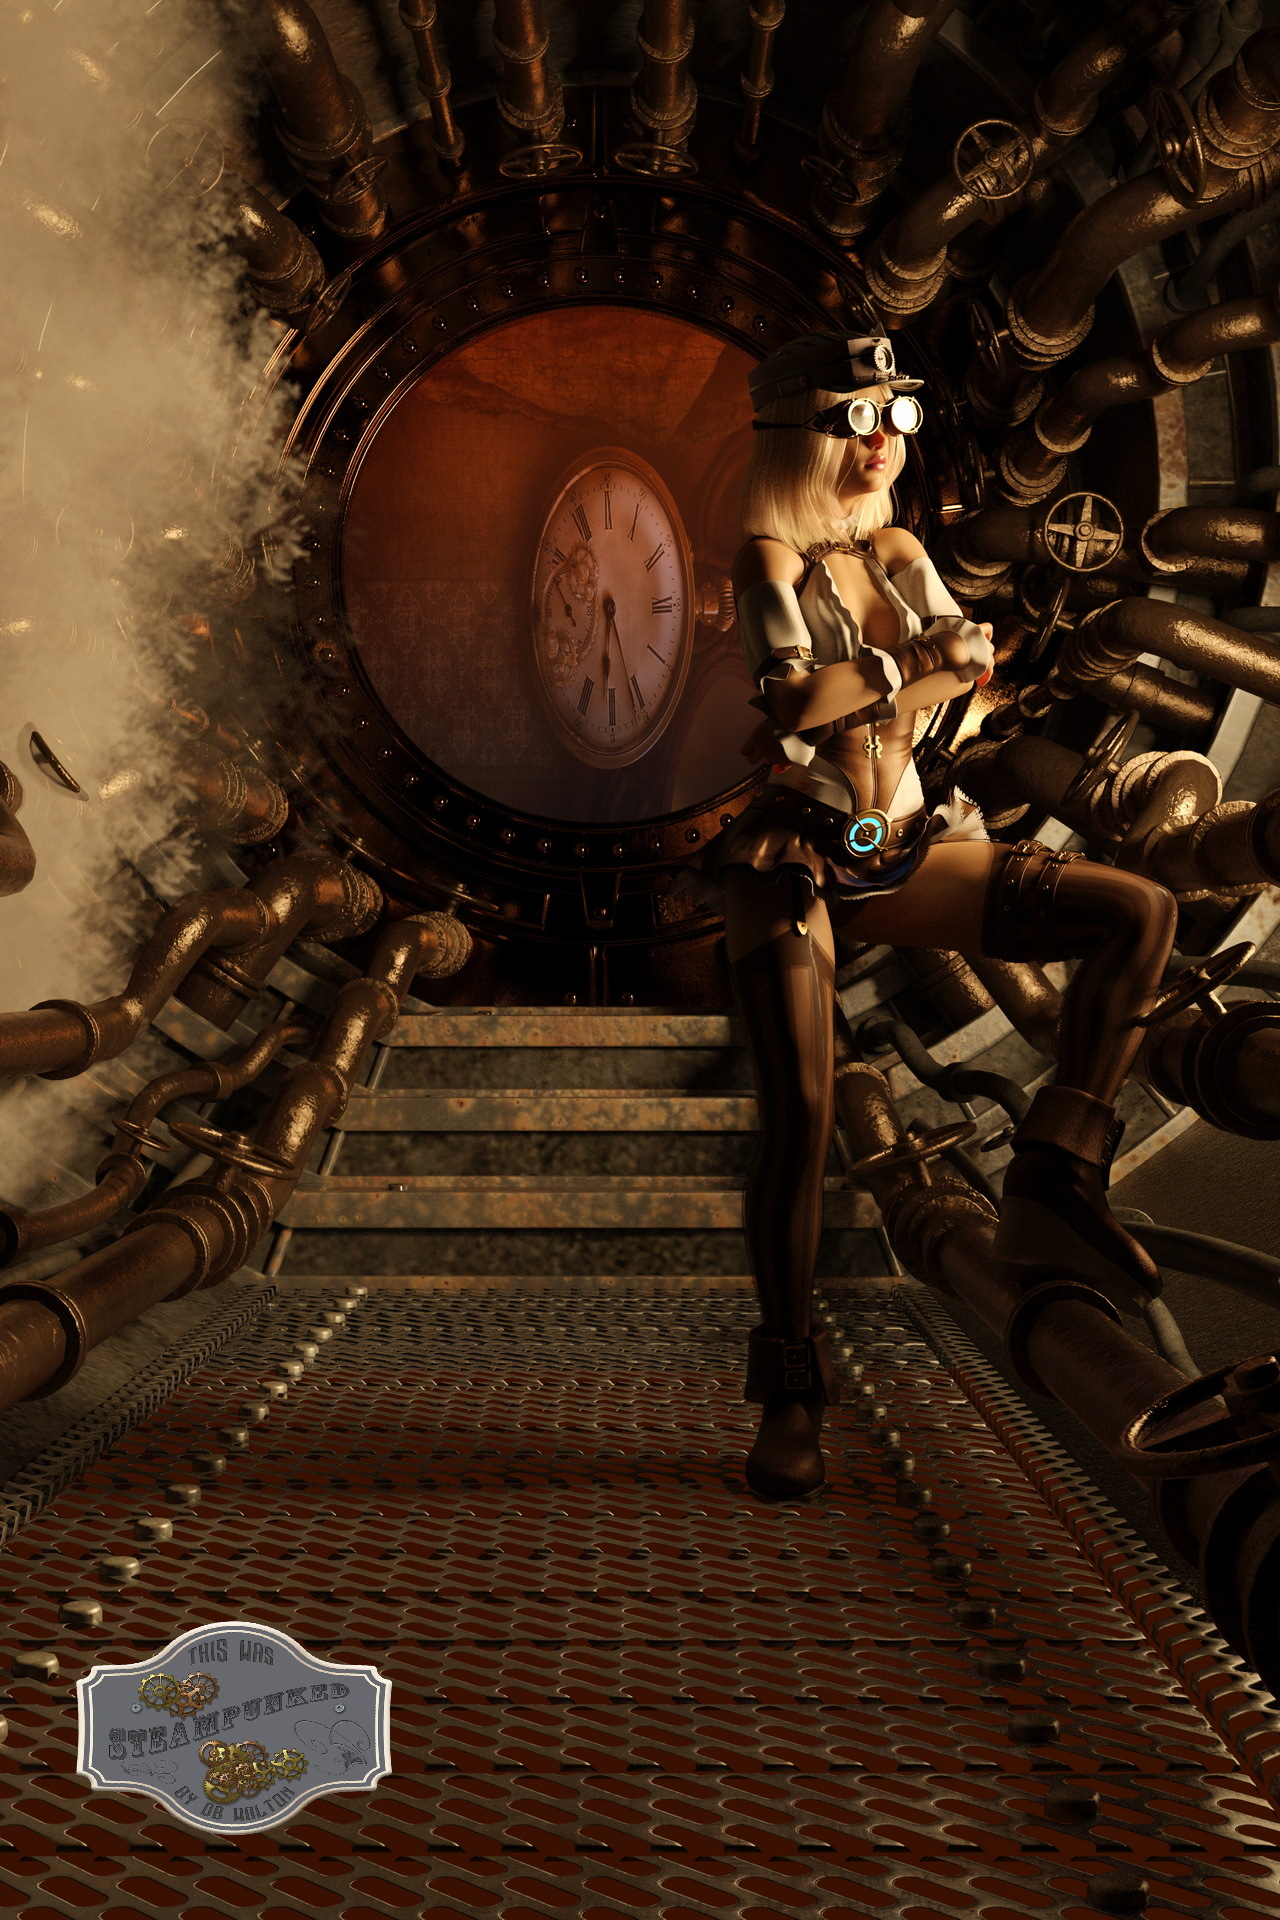 Steampunk Time Travel 2 by dbwalton